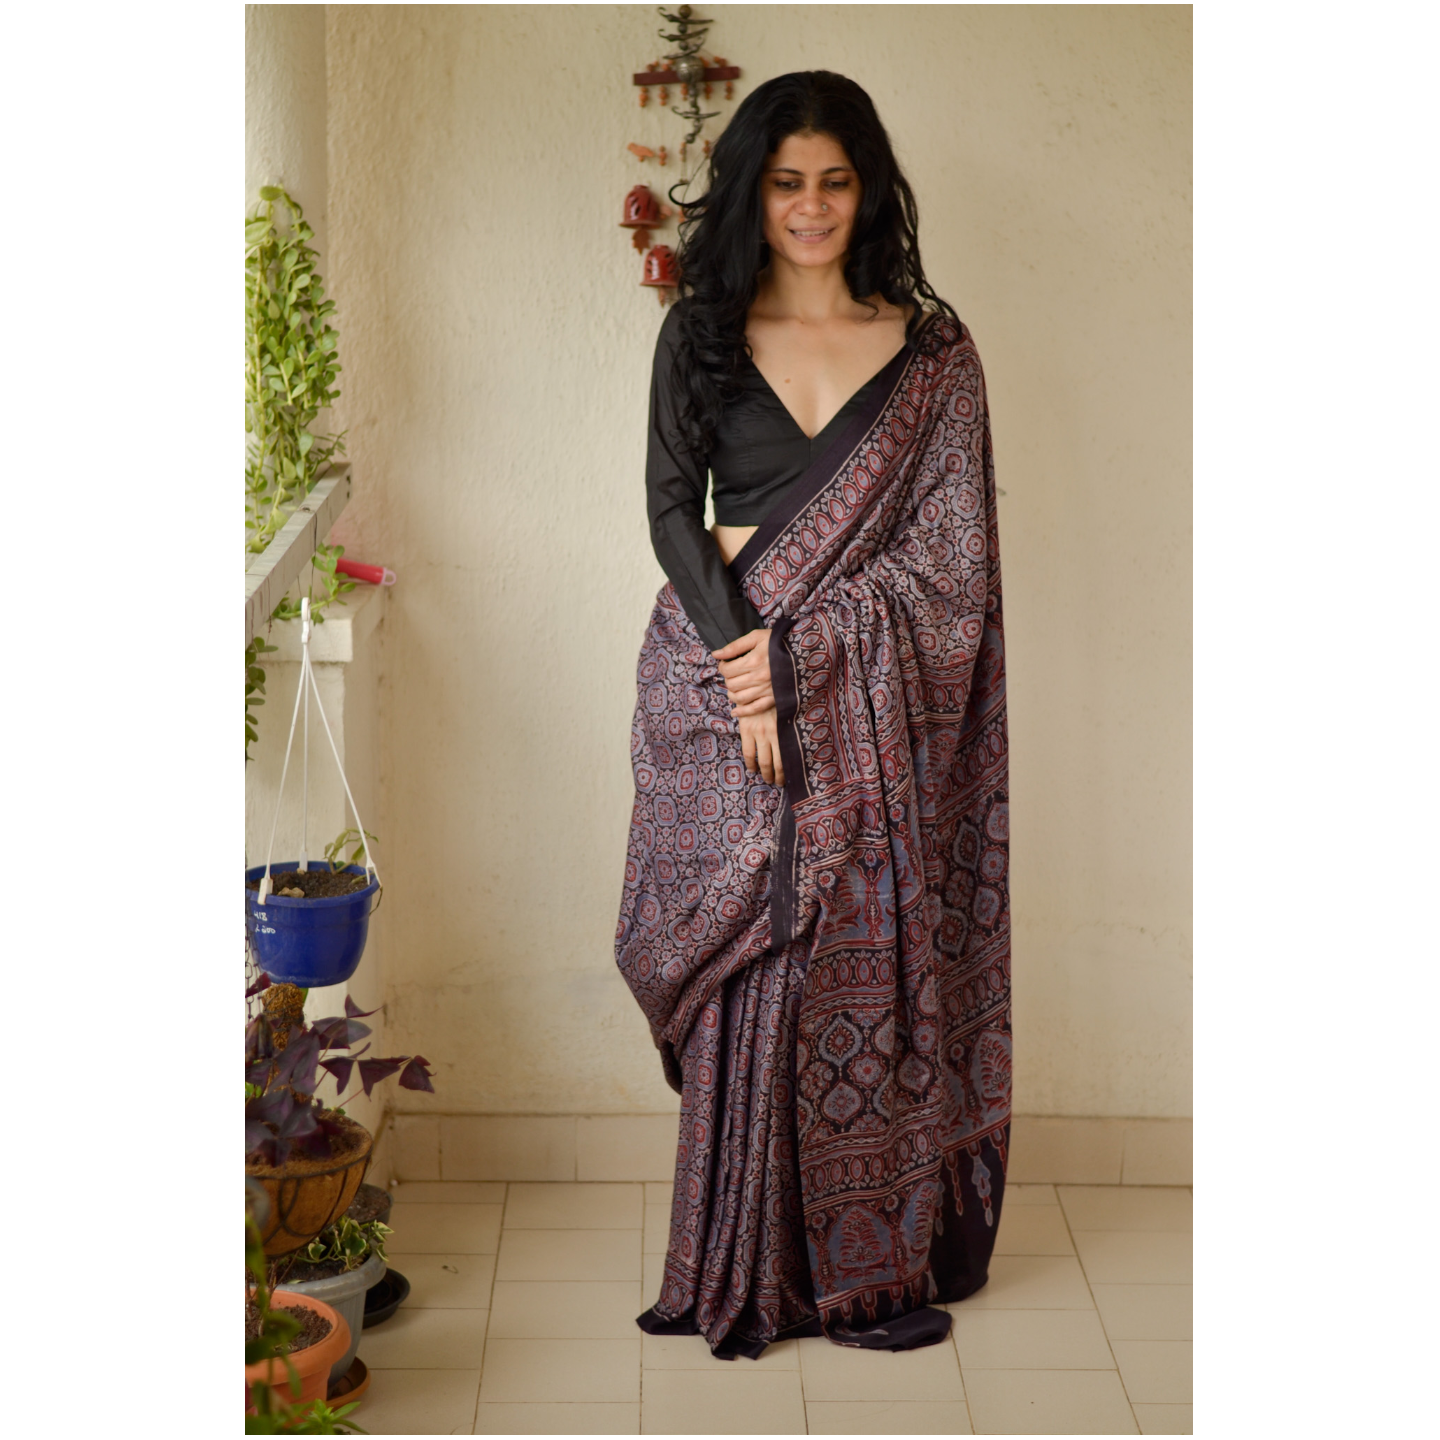 Handblock printed and handmade natural dyed gajji  silk Ajrakh  saree.